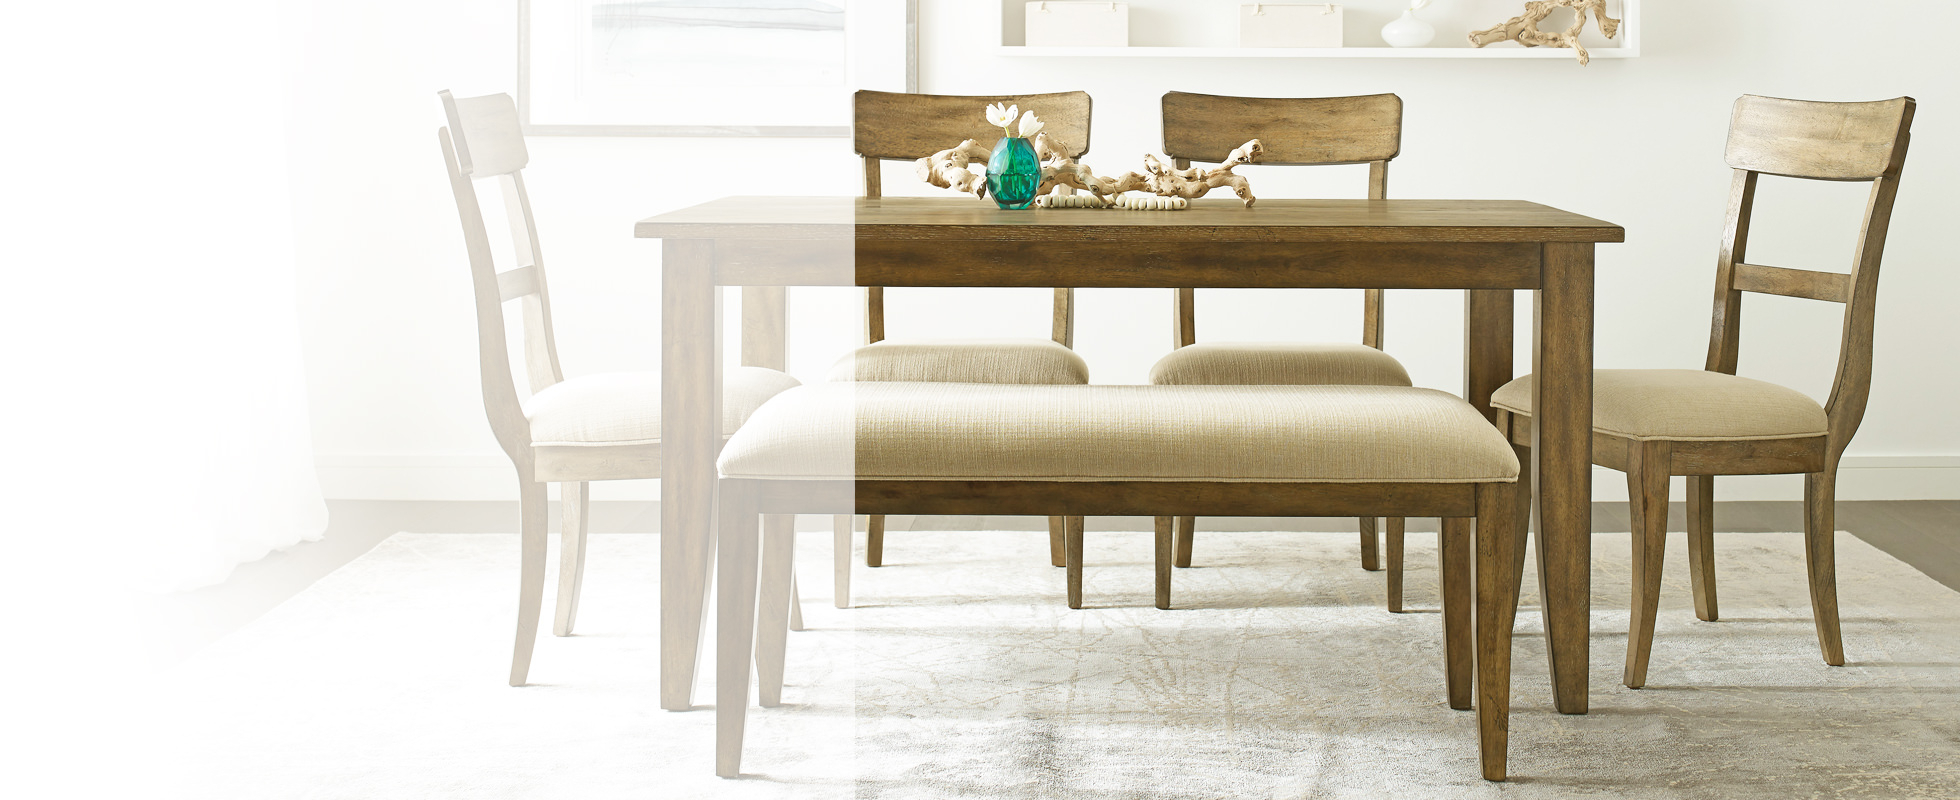 Most Recently Released Bedfo 3 Piece Dining Sets With Regard To Kitchen & Dining Furniture (View 12 of 20)